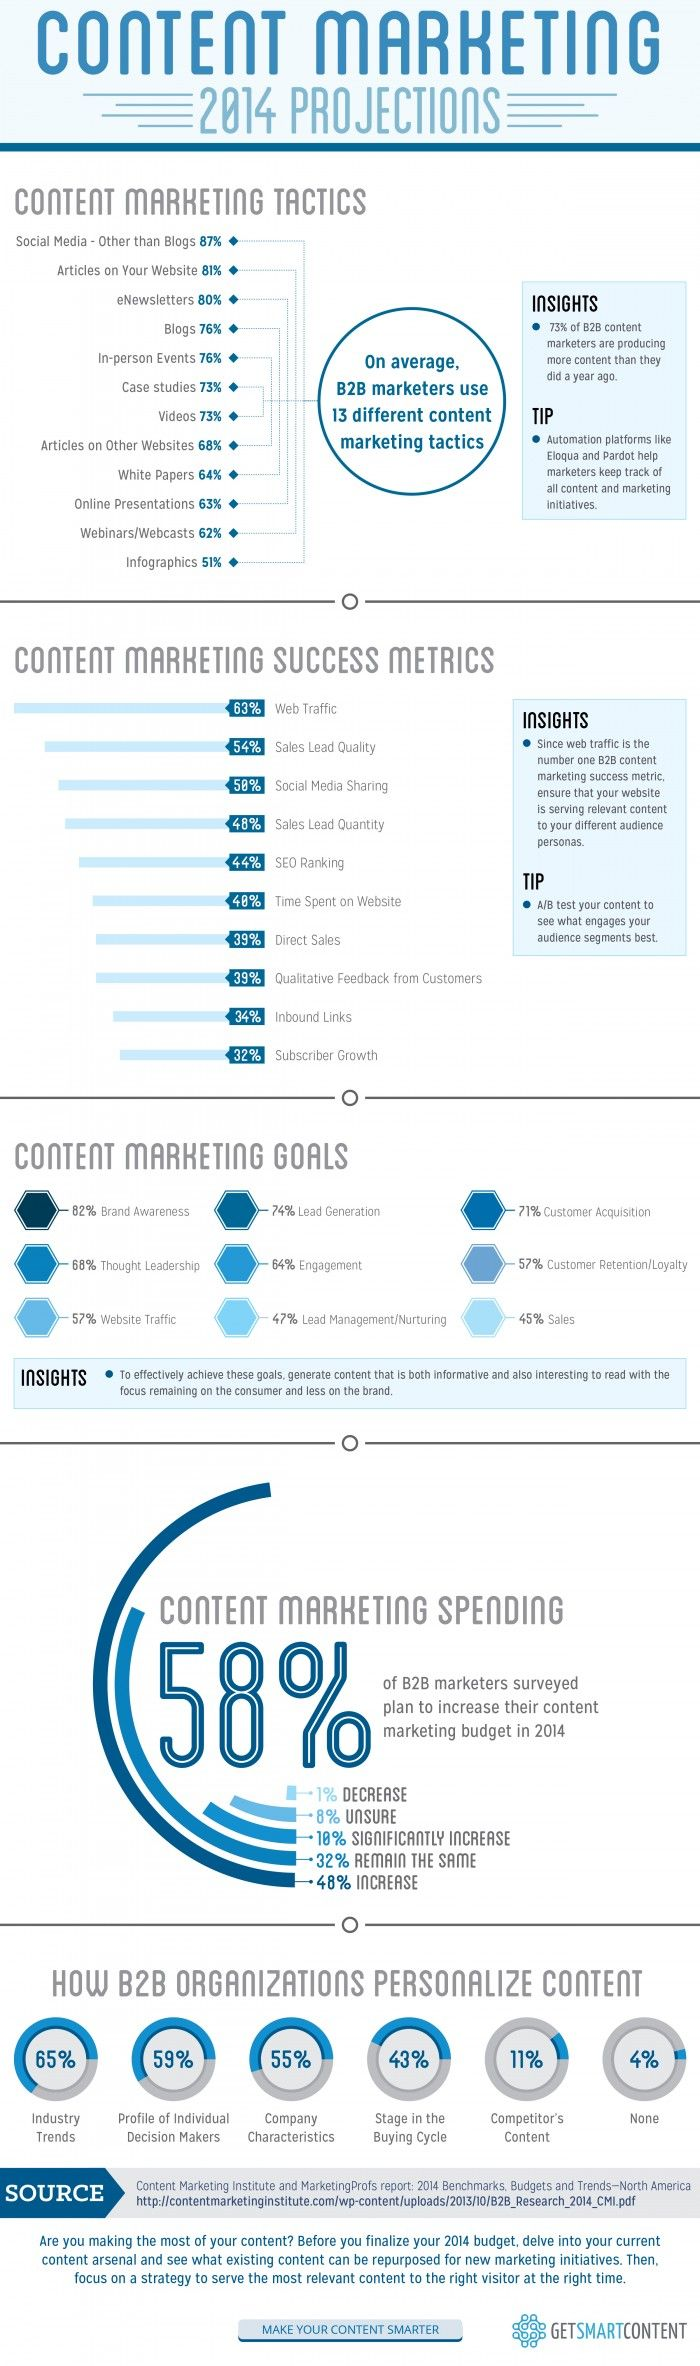 Content Marketing 2014 Projections